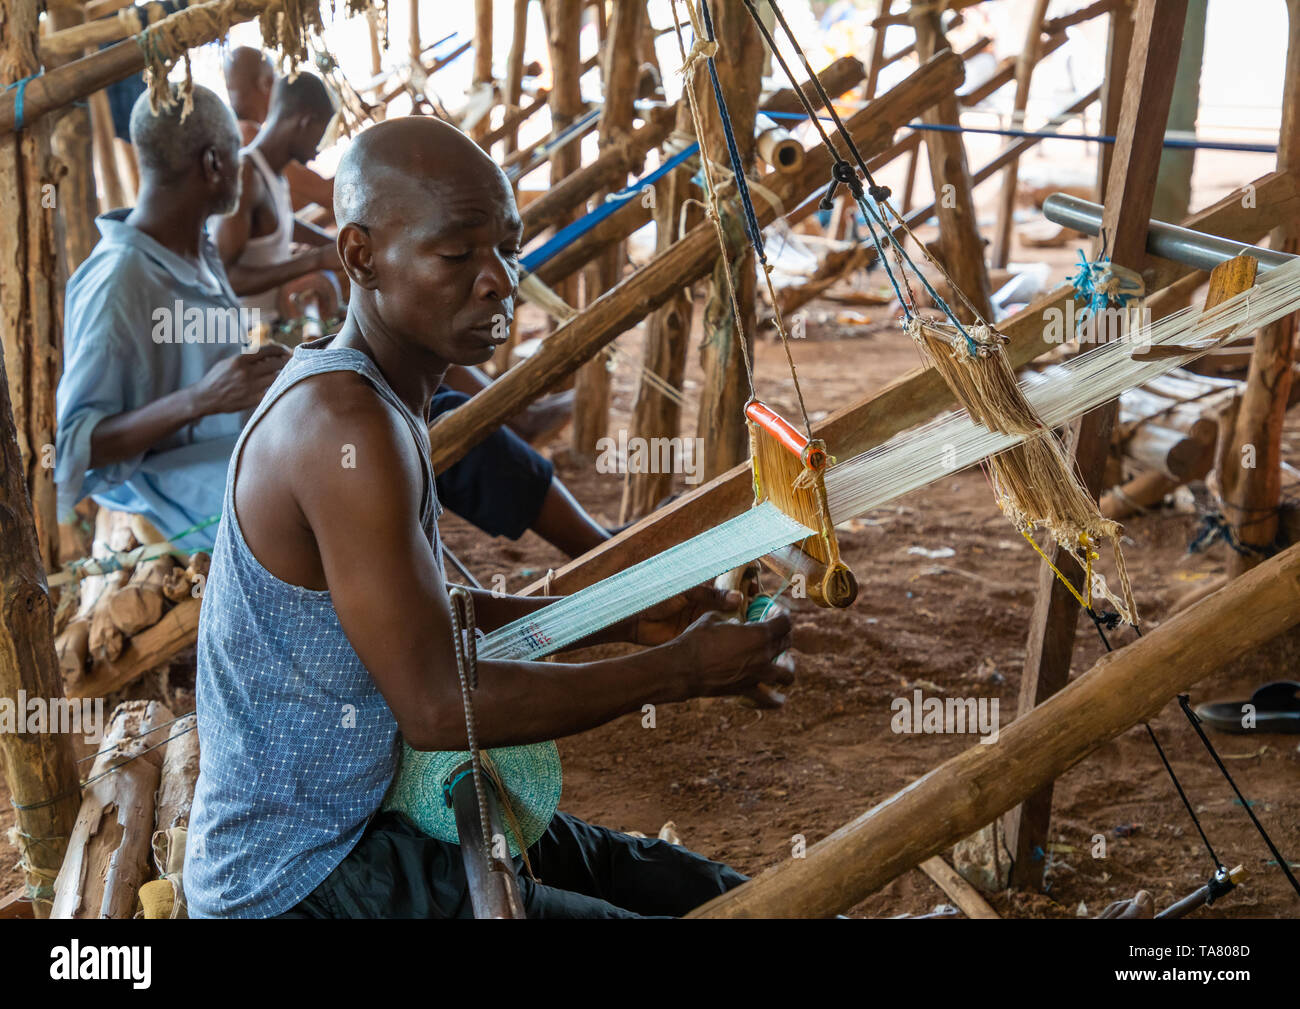 African men weaving in a traditional textile factory, Savanes district, Waraniene, Ivory Coast - Stock Image